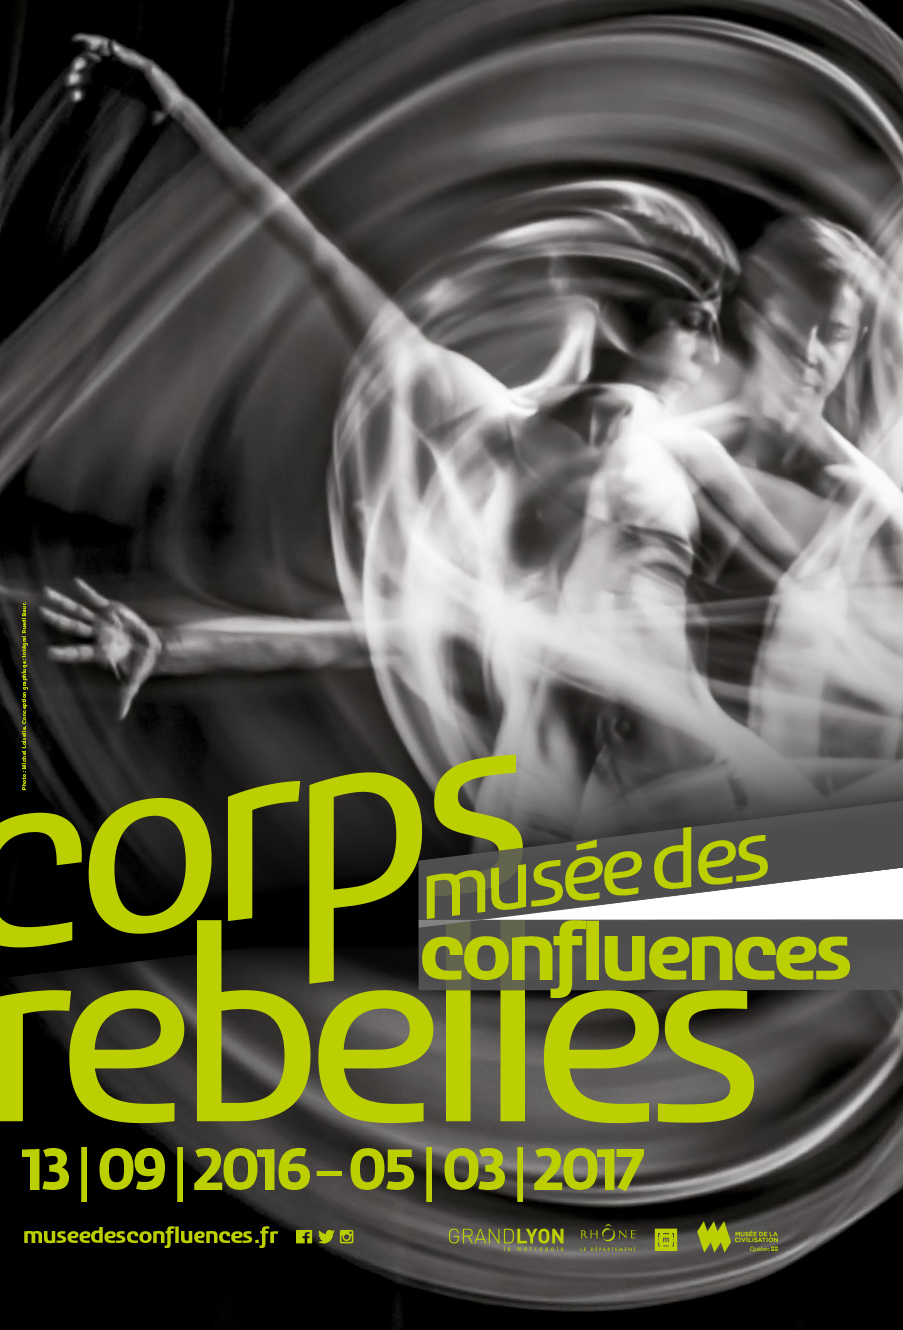 Exposition Corps Rebelles